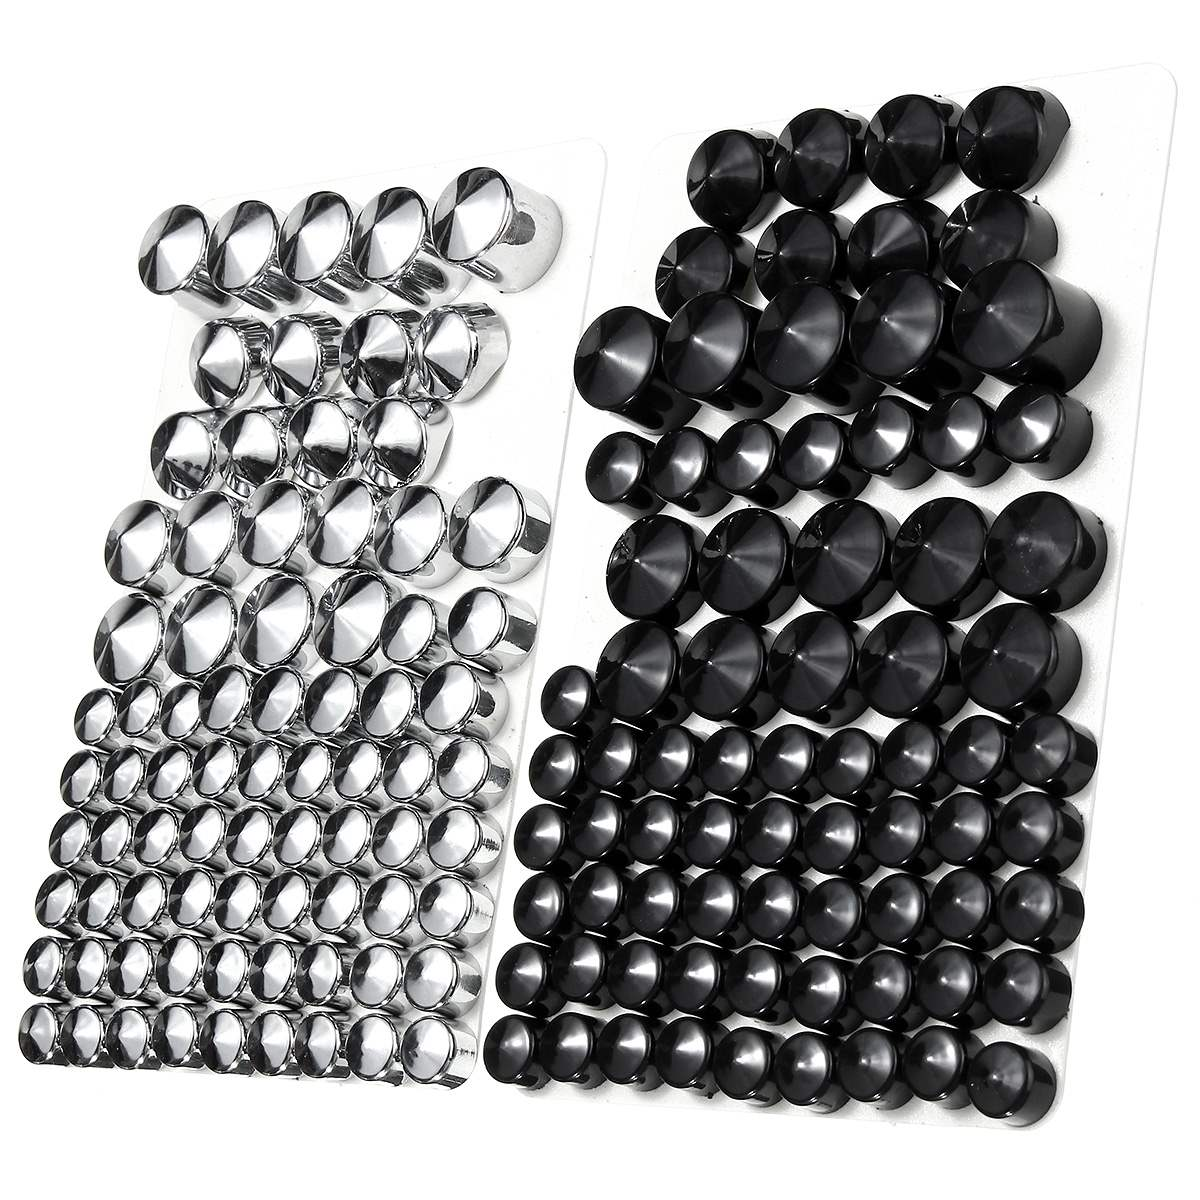 76pc Motorcycle Screw Bolt Topper Caps Cover For Harley-Davidson Twin Cam/Dyna 1991-2013 UK ABS Plastic Chrome Black цена 2017